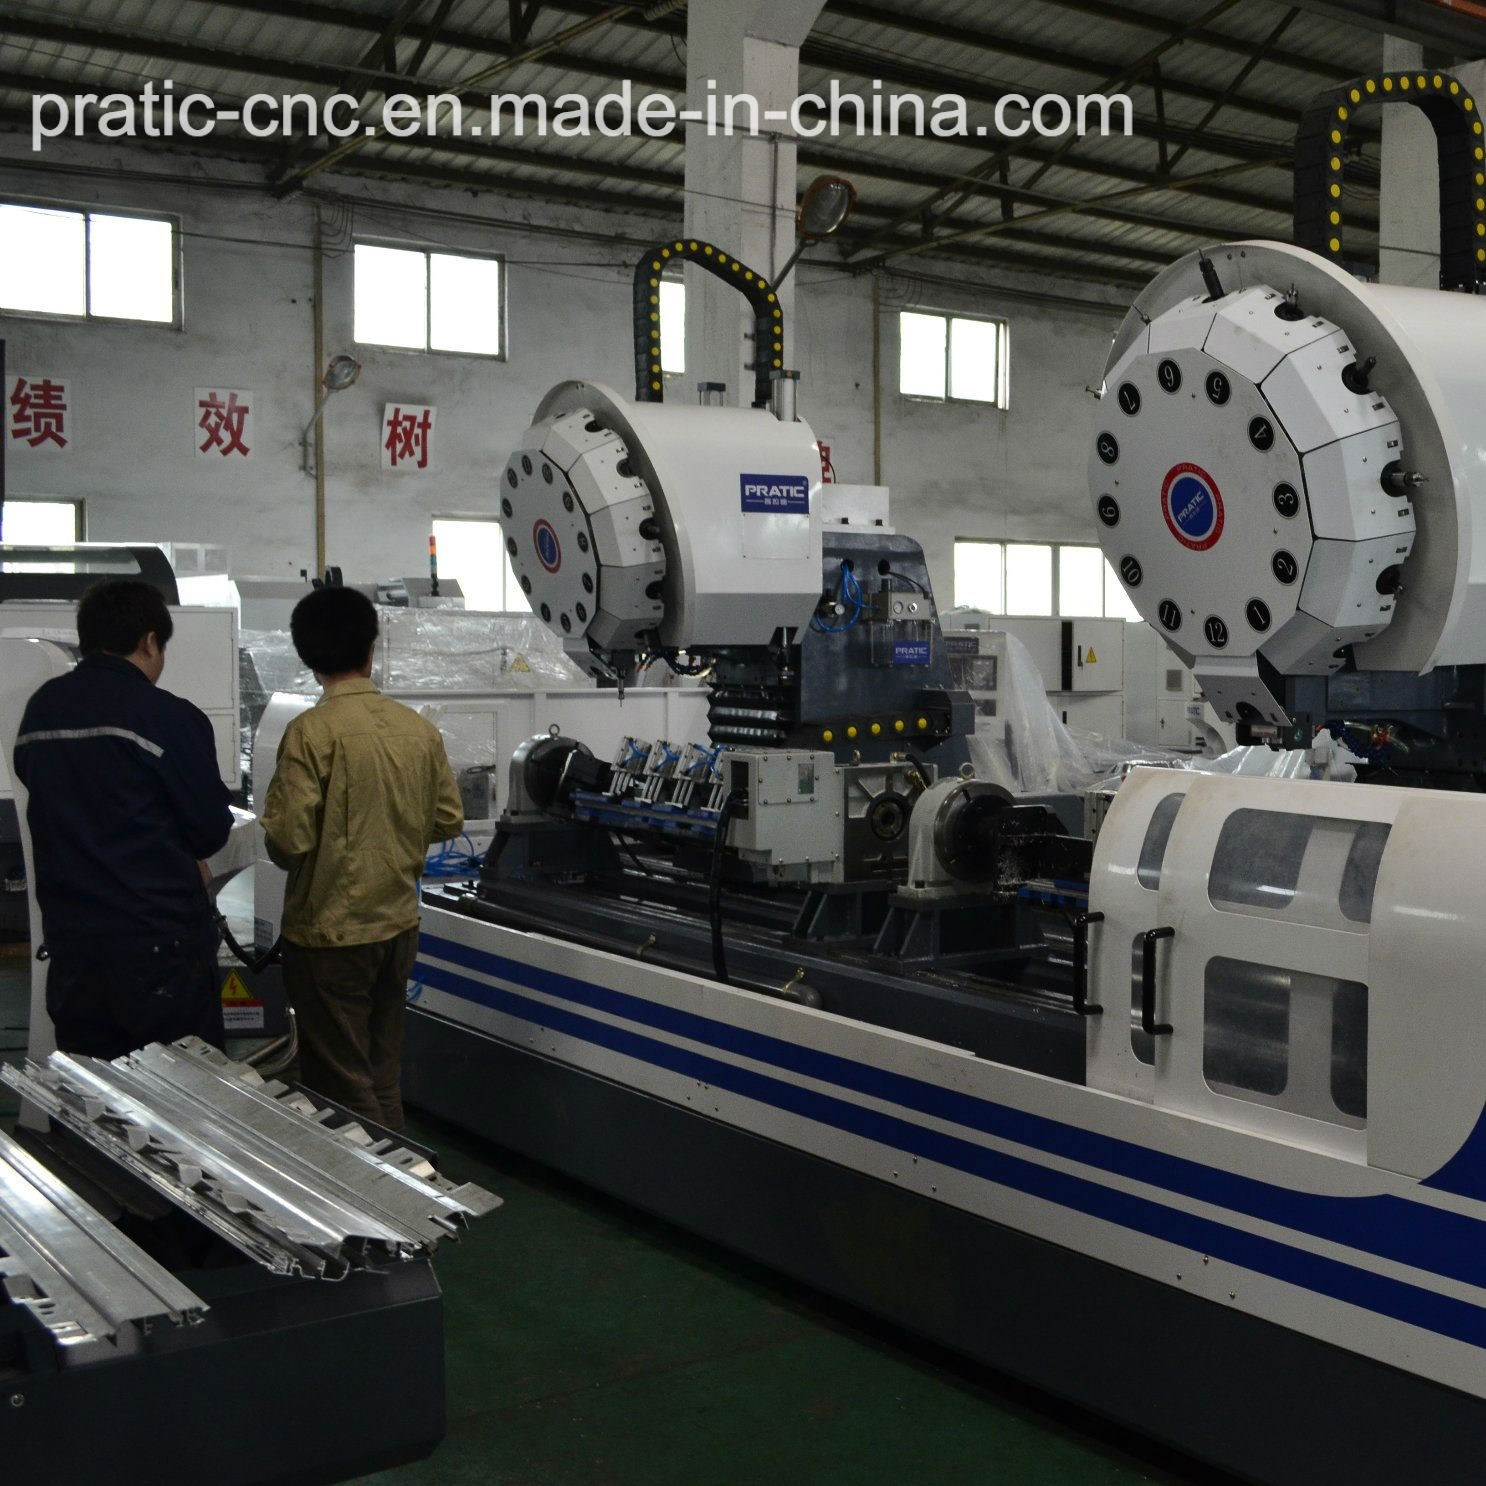 CNC 3 Axis Turret Tool Magazine Milling Machine -Pratic Pz Series pictures & photos